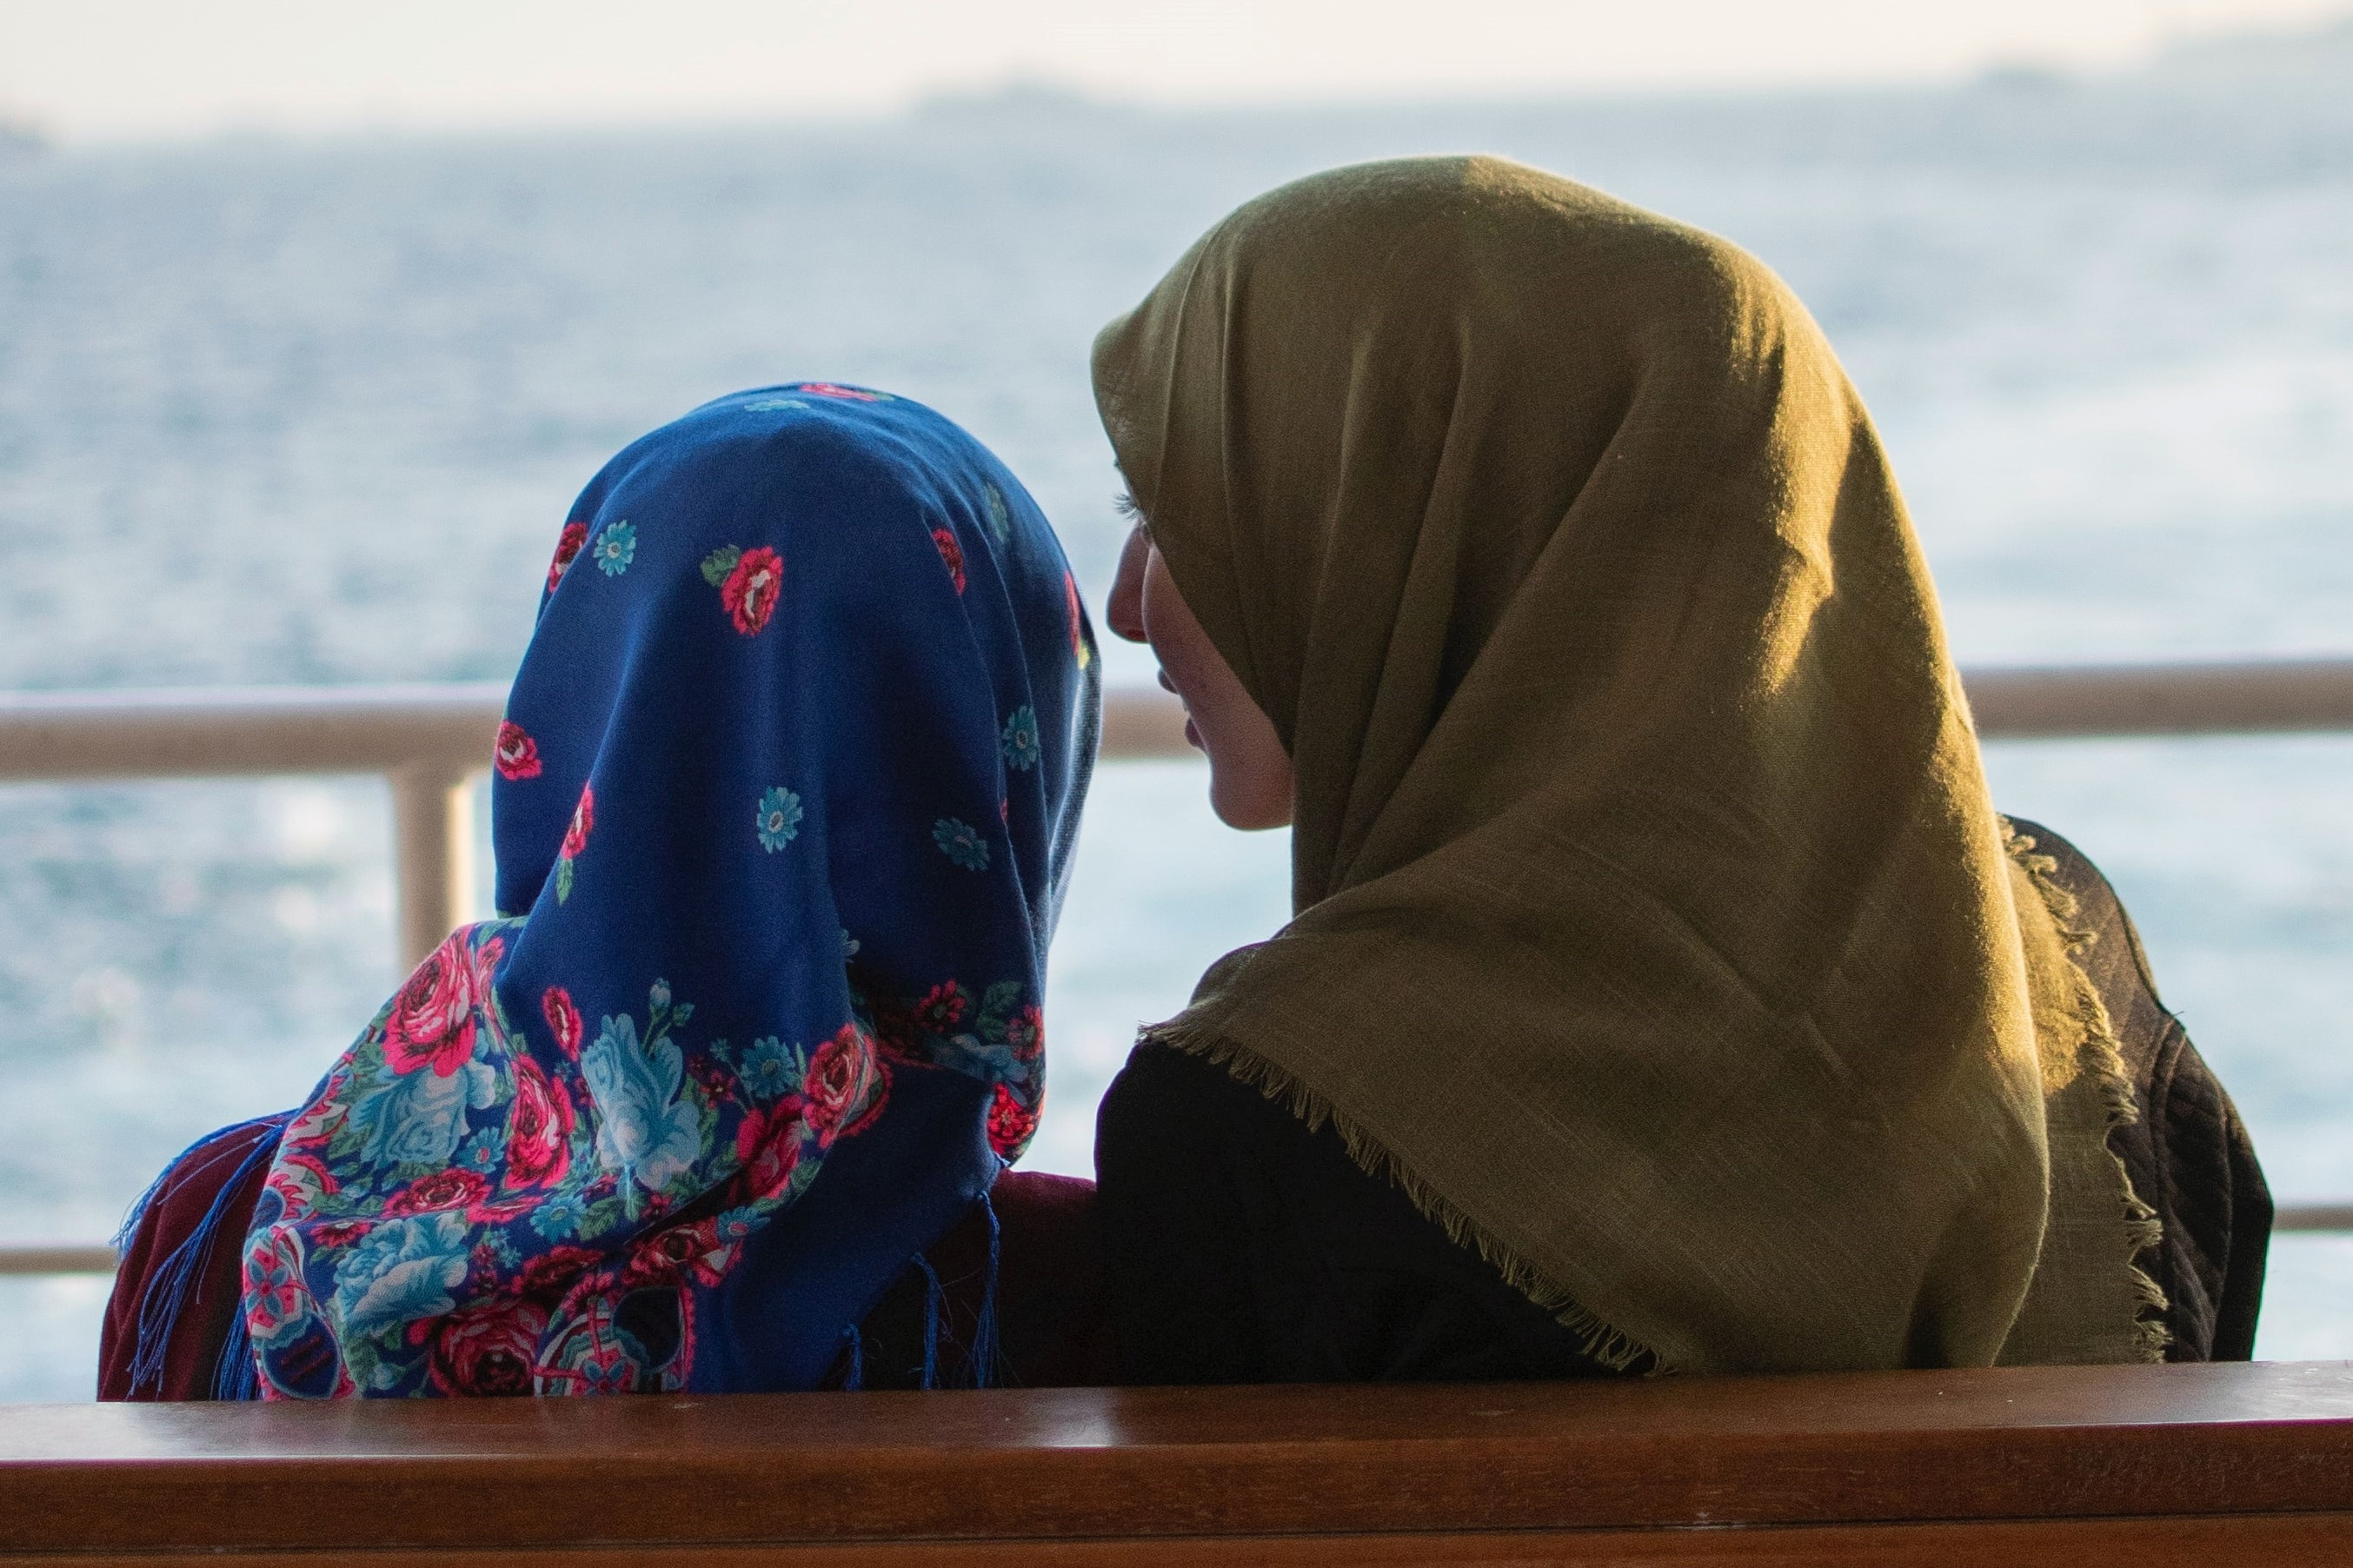 Two women speaking to each other